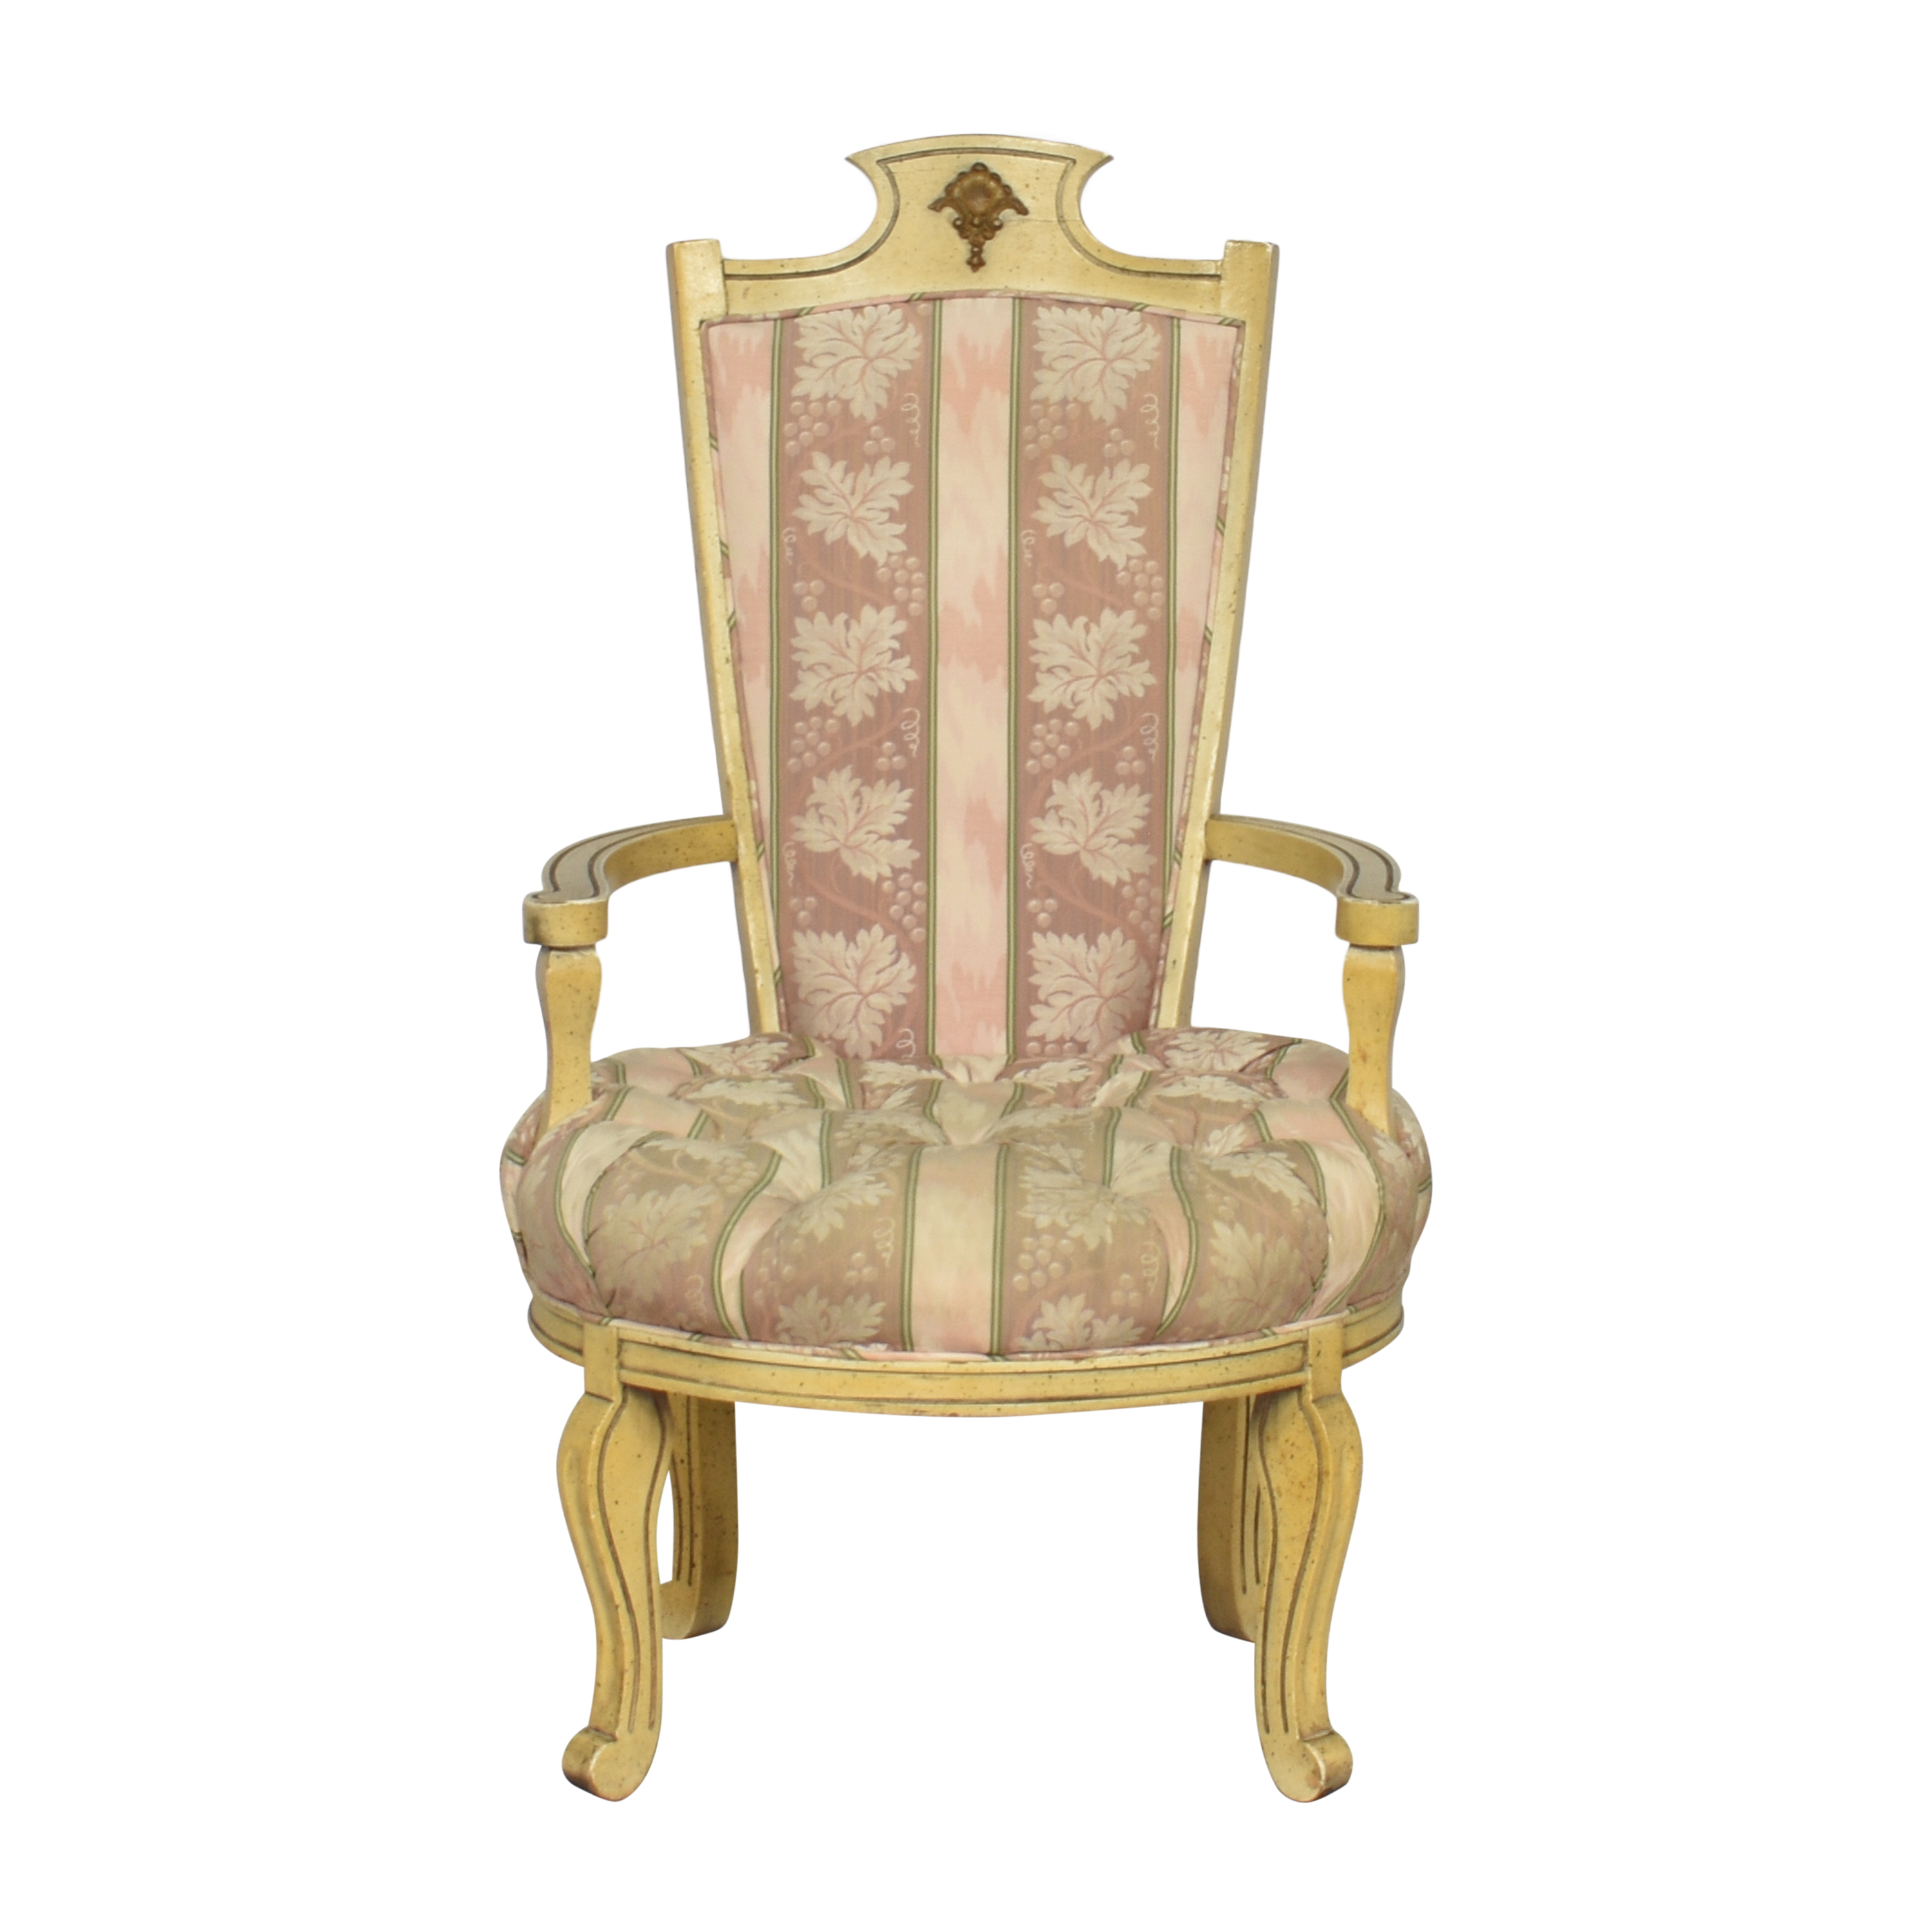 Decorative Accent Chair second hand